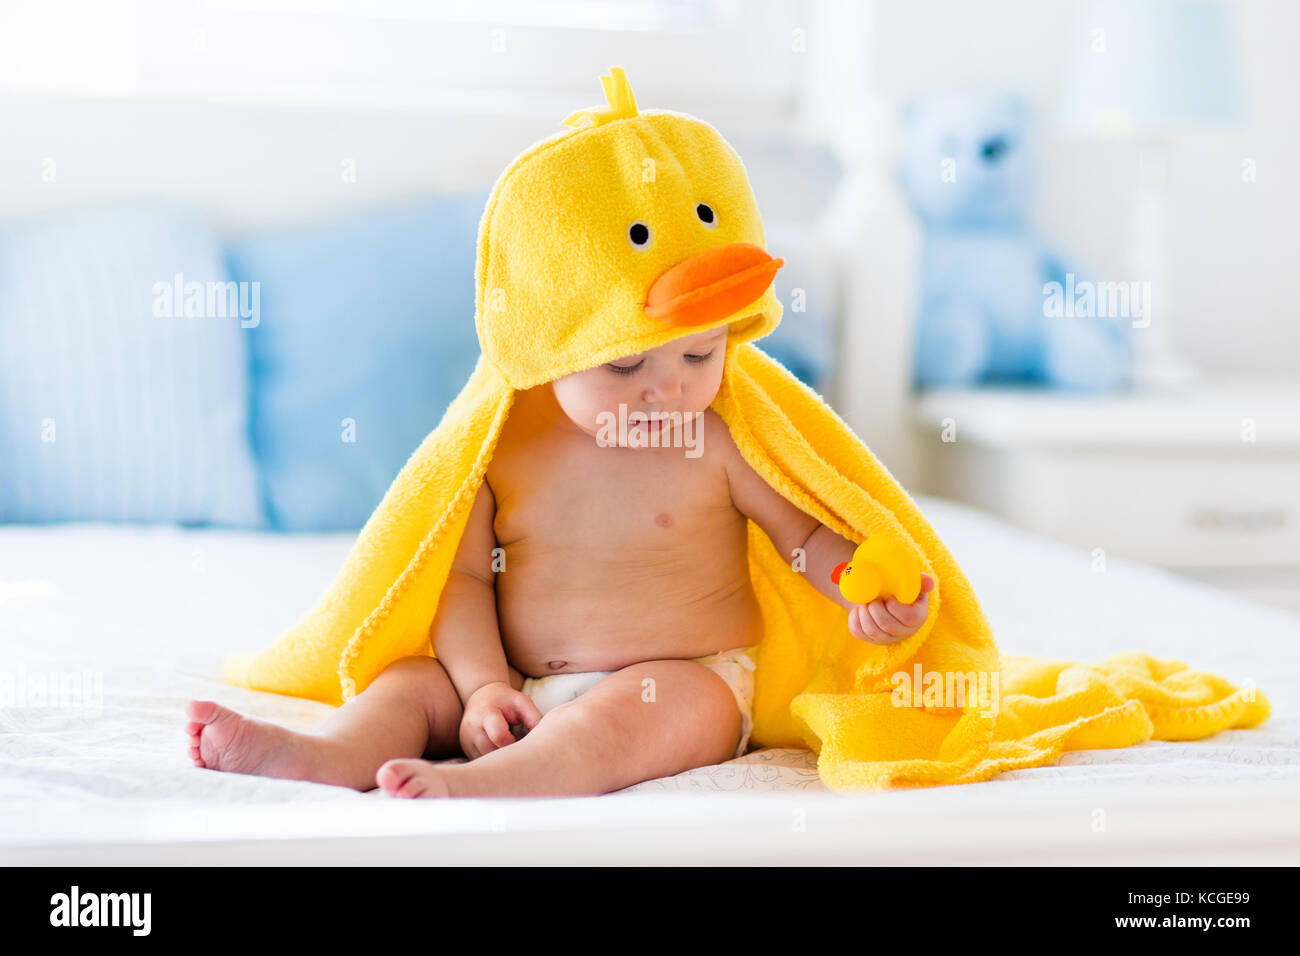 221ca9524 Happy laughing baby wearing yellow hooded duck towel sitting on ...